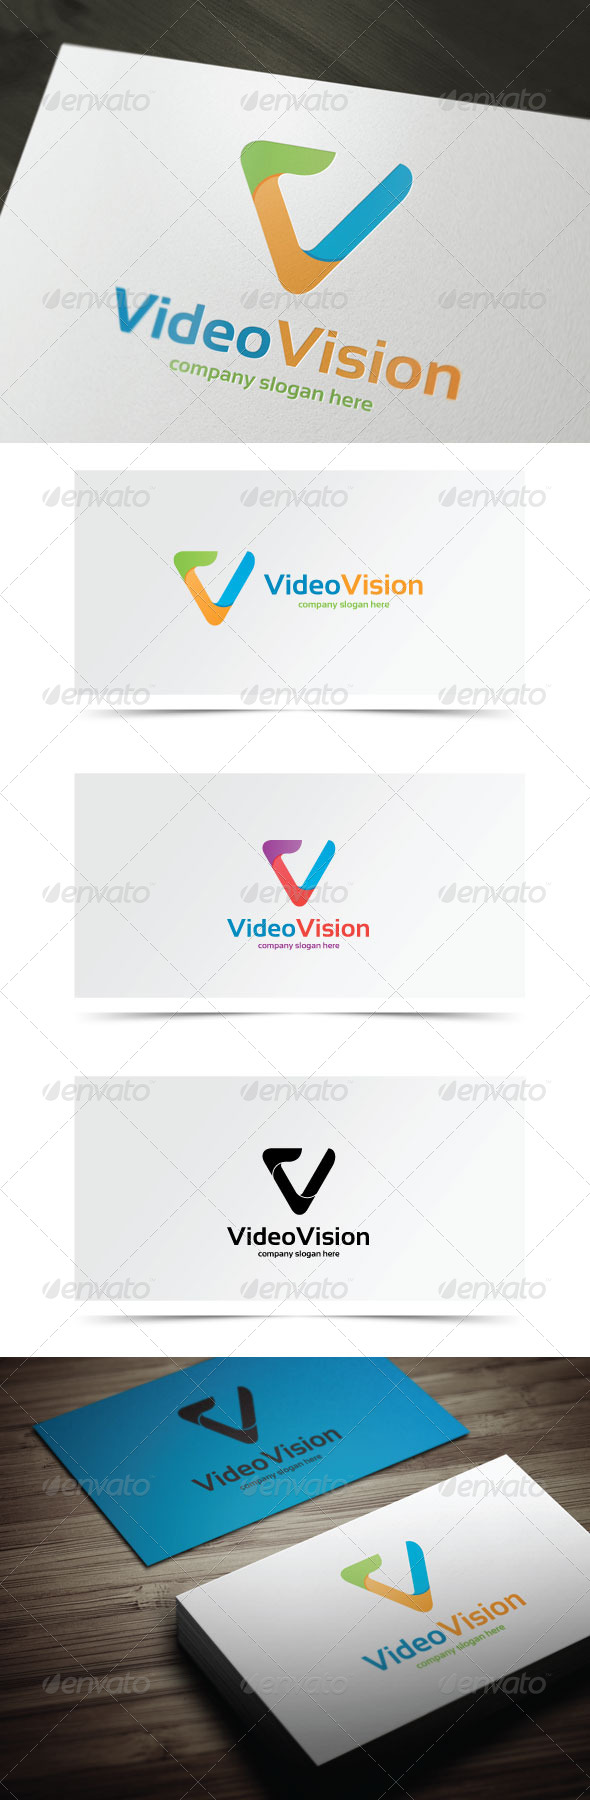 GraphicRiver Video Vision 8512243